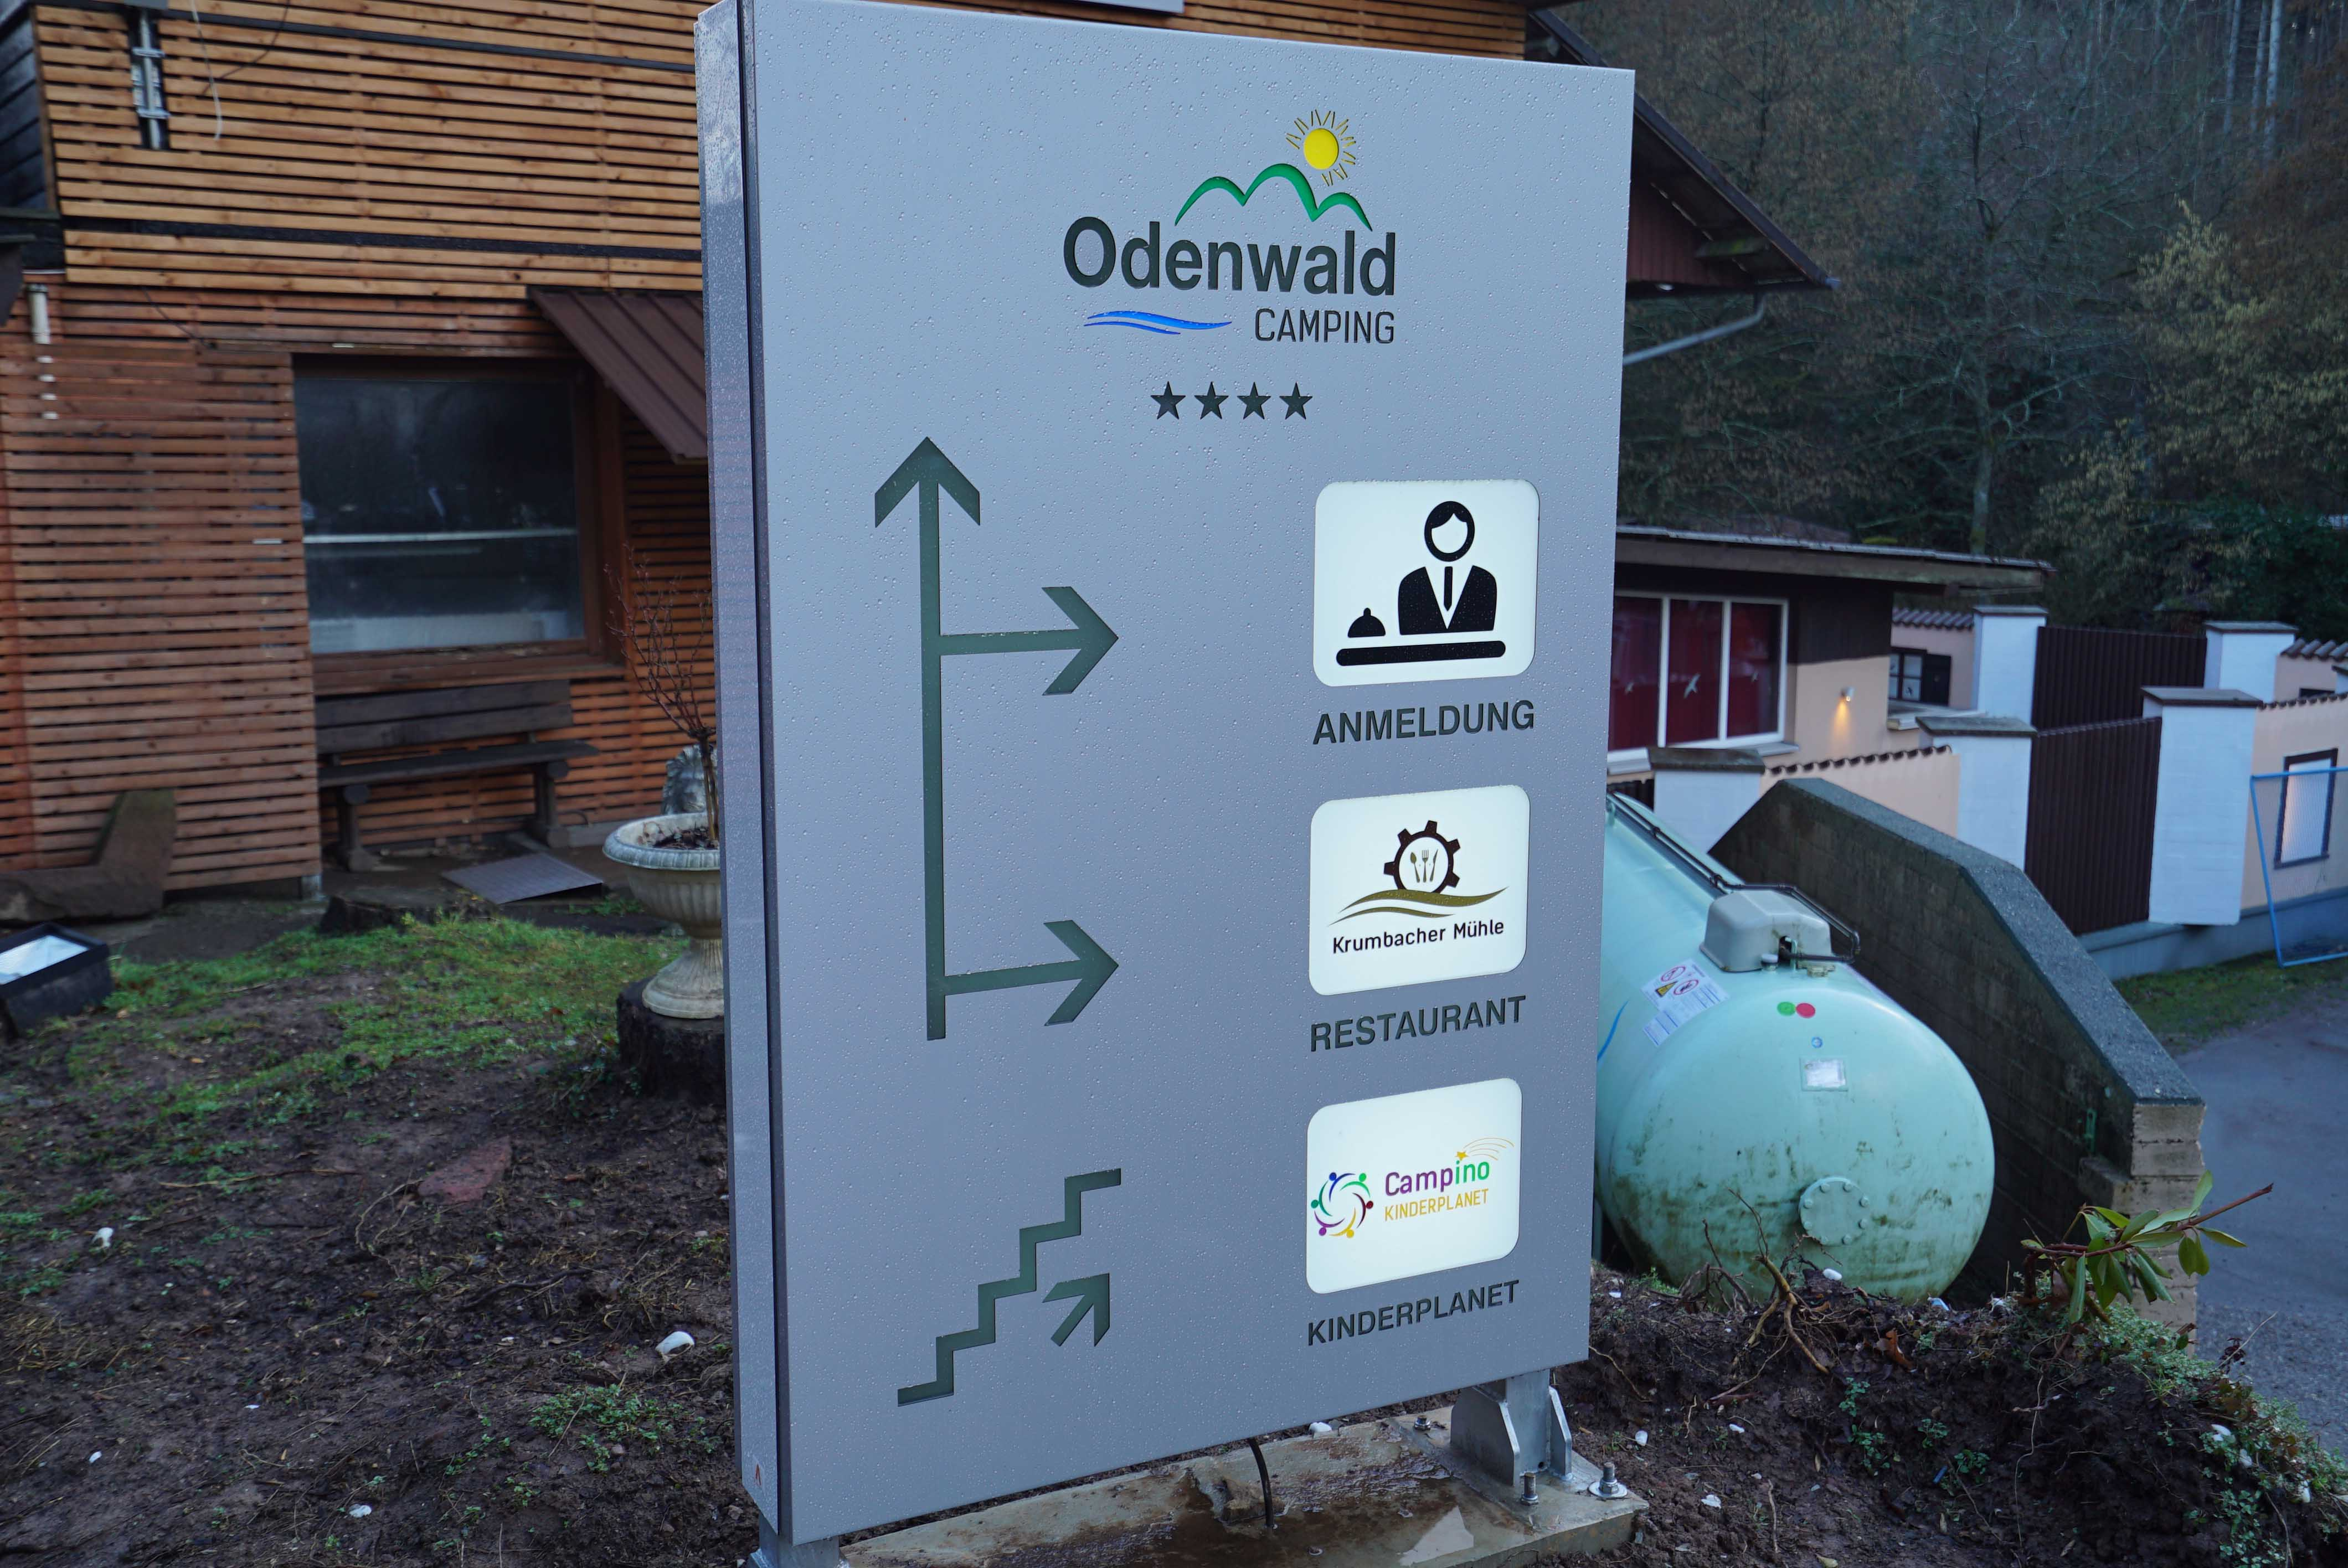 Camping Odenwald01